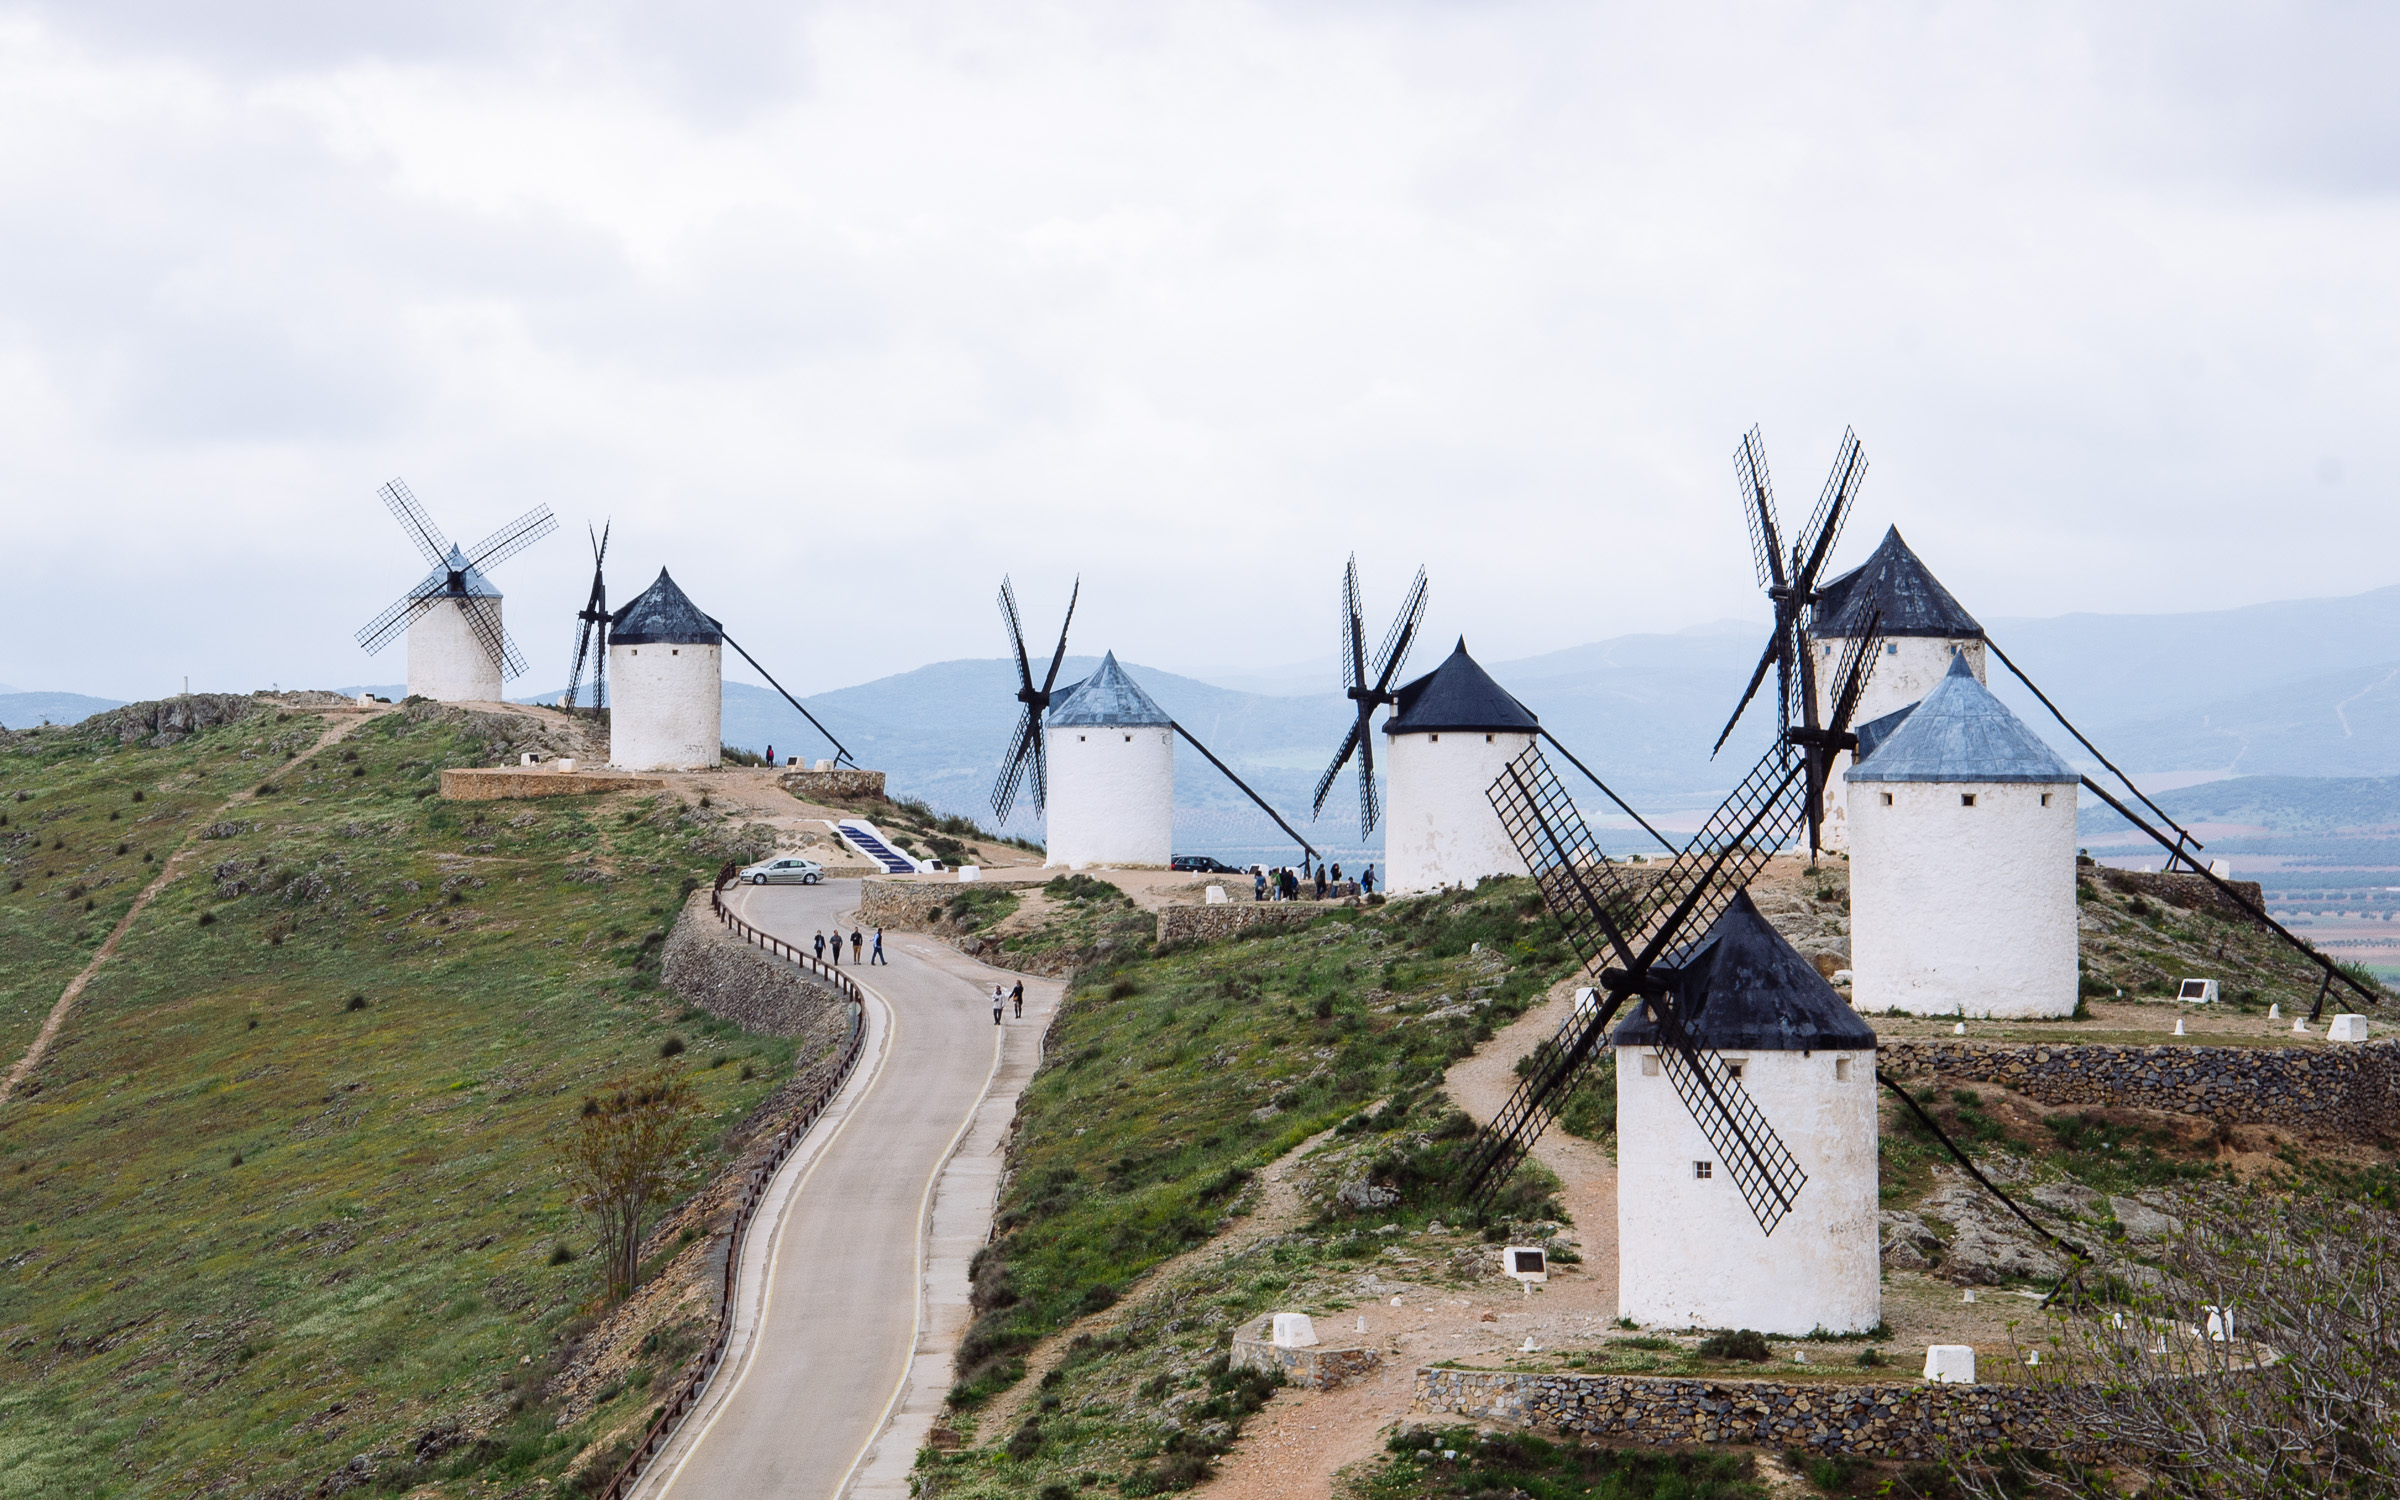 The Windmills of Castile La Mancha